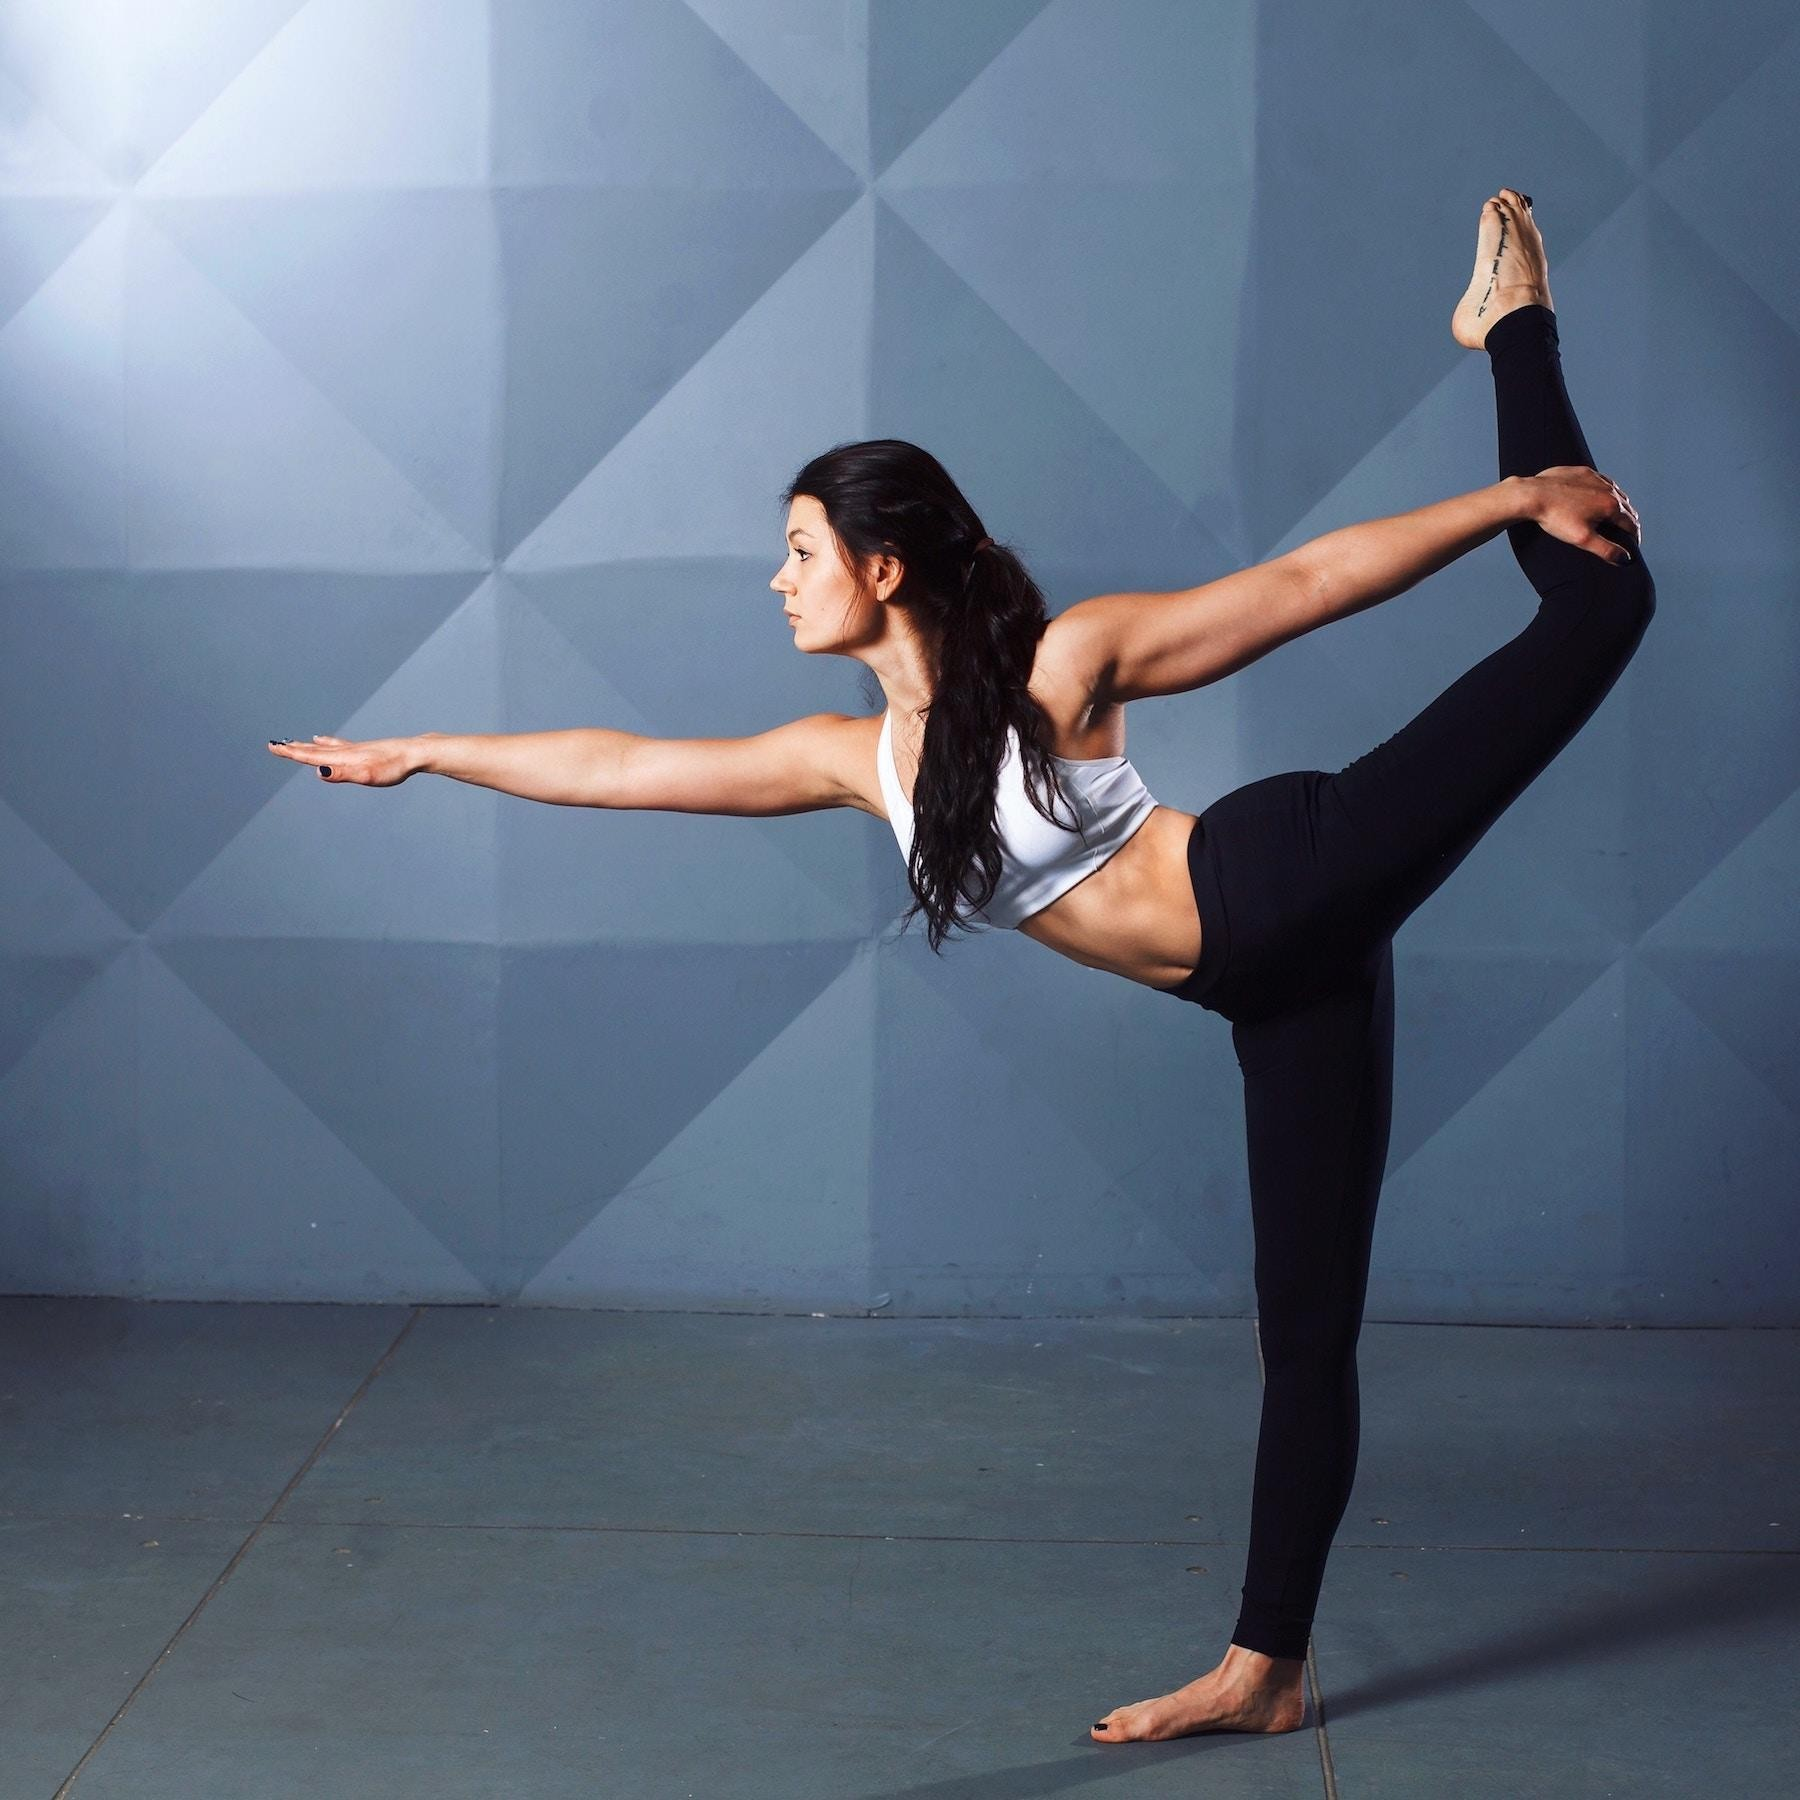 Eastern Suburbs Yoga Studio - Price Reduced